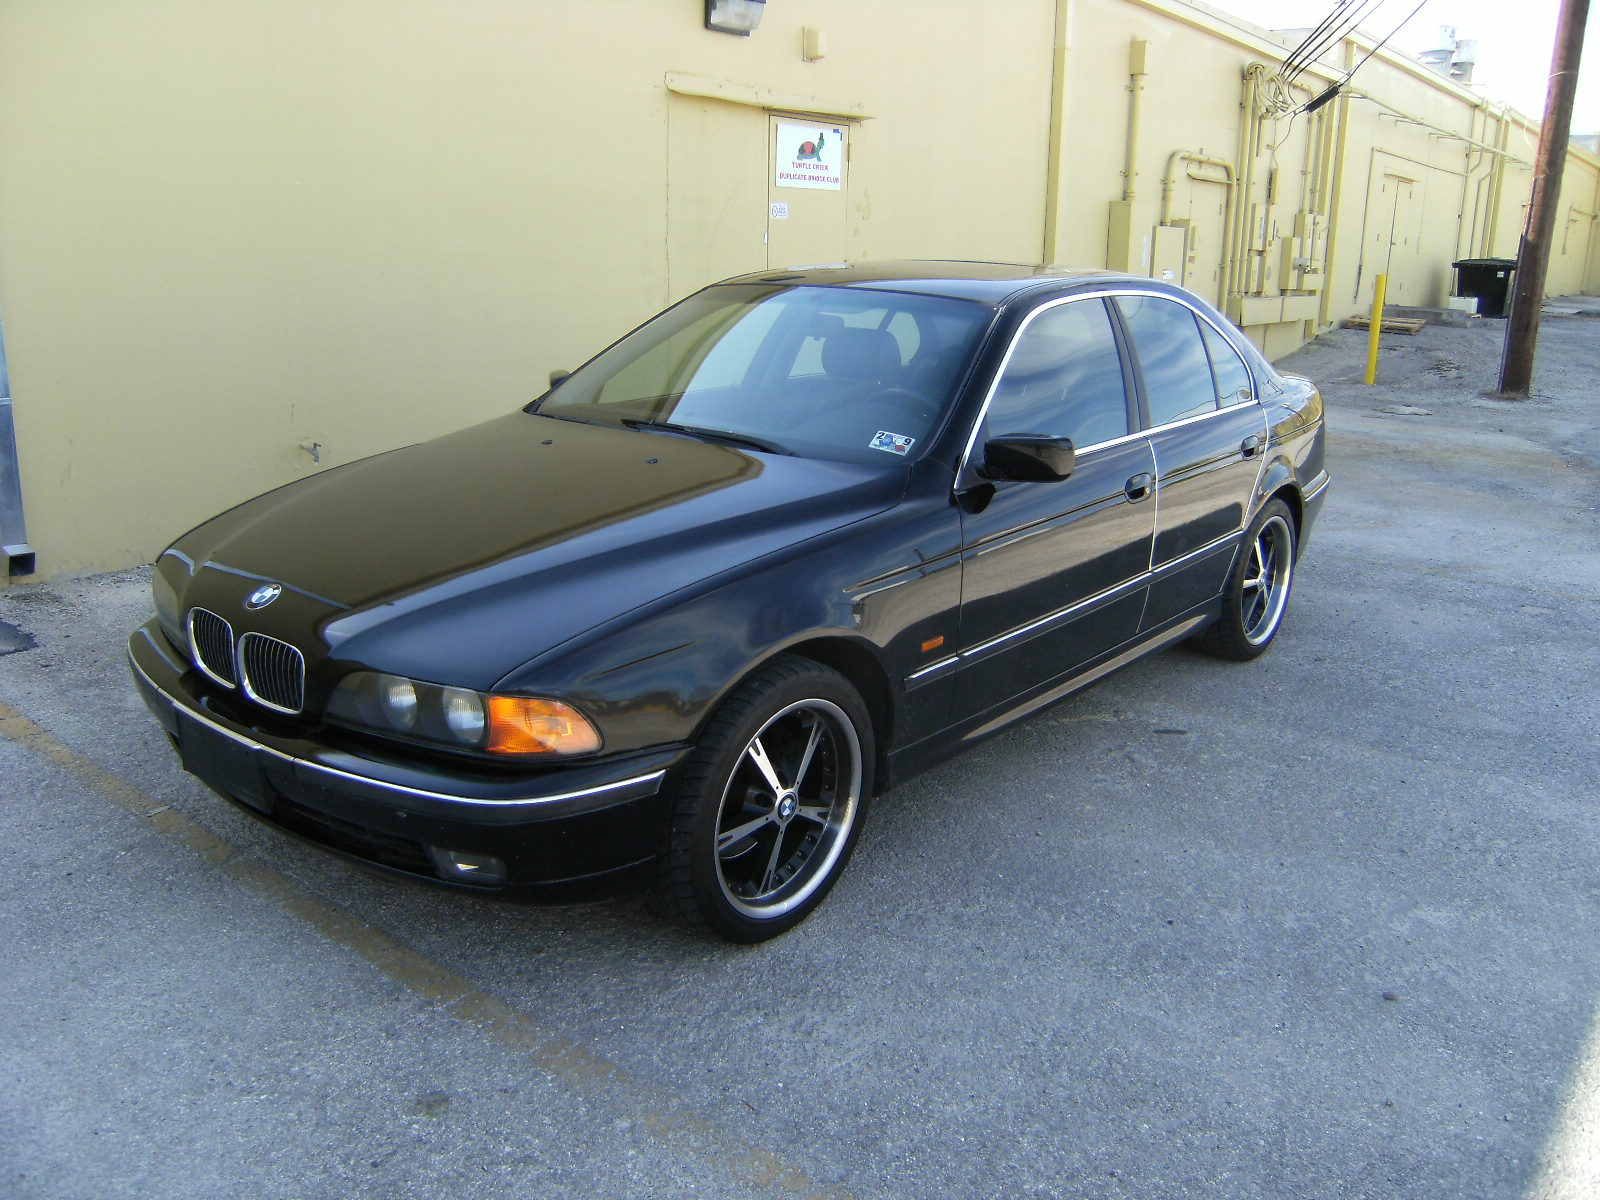 BMW 5 series 520i 1997 photo - 7